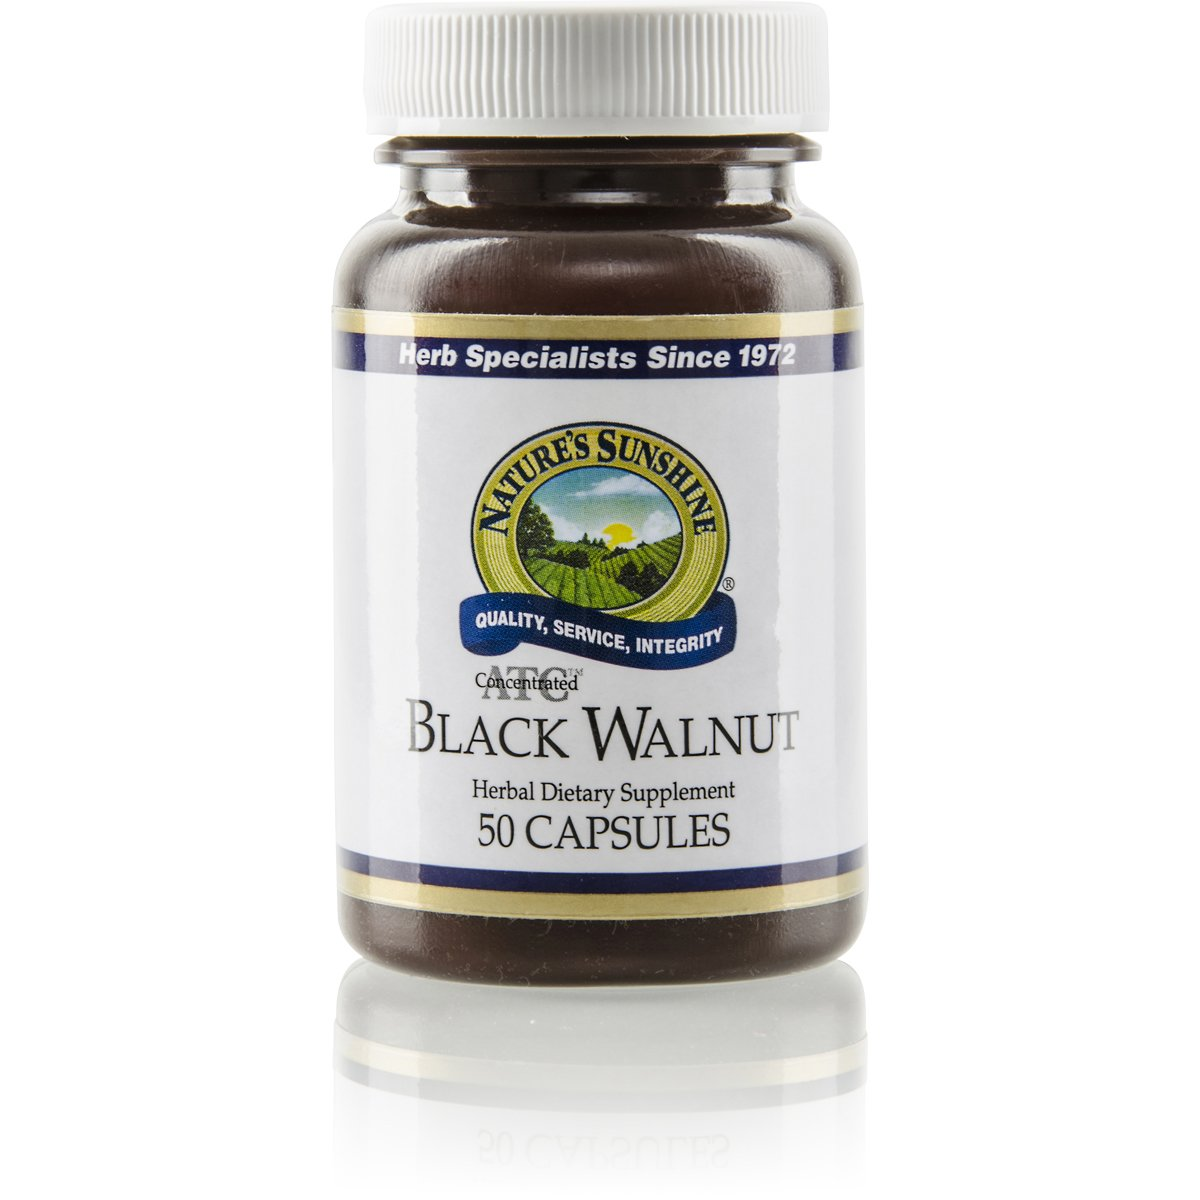 Nature s Sunshine Black Walnut, ATC Concentrate, 50 Capsules Helps Maintain The Intestinal System, Soothes Irritated Tissues, and Supports The Immune System